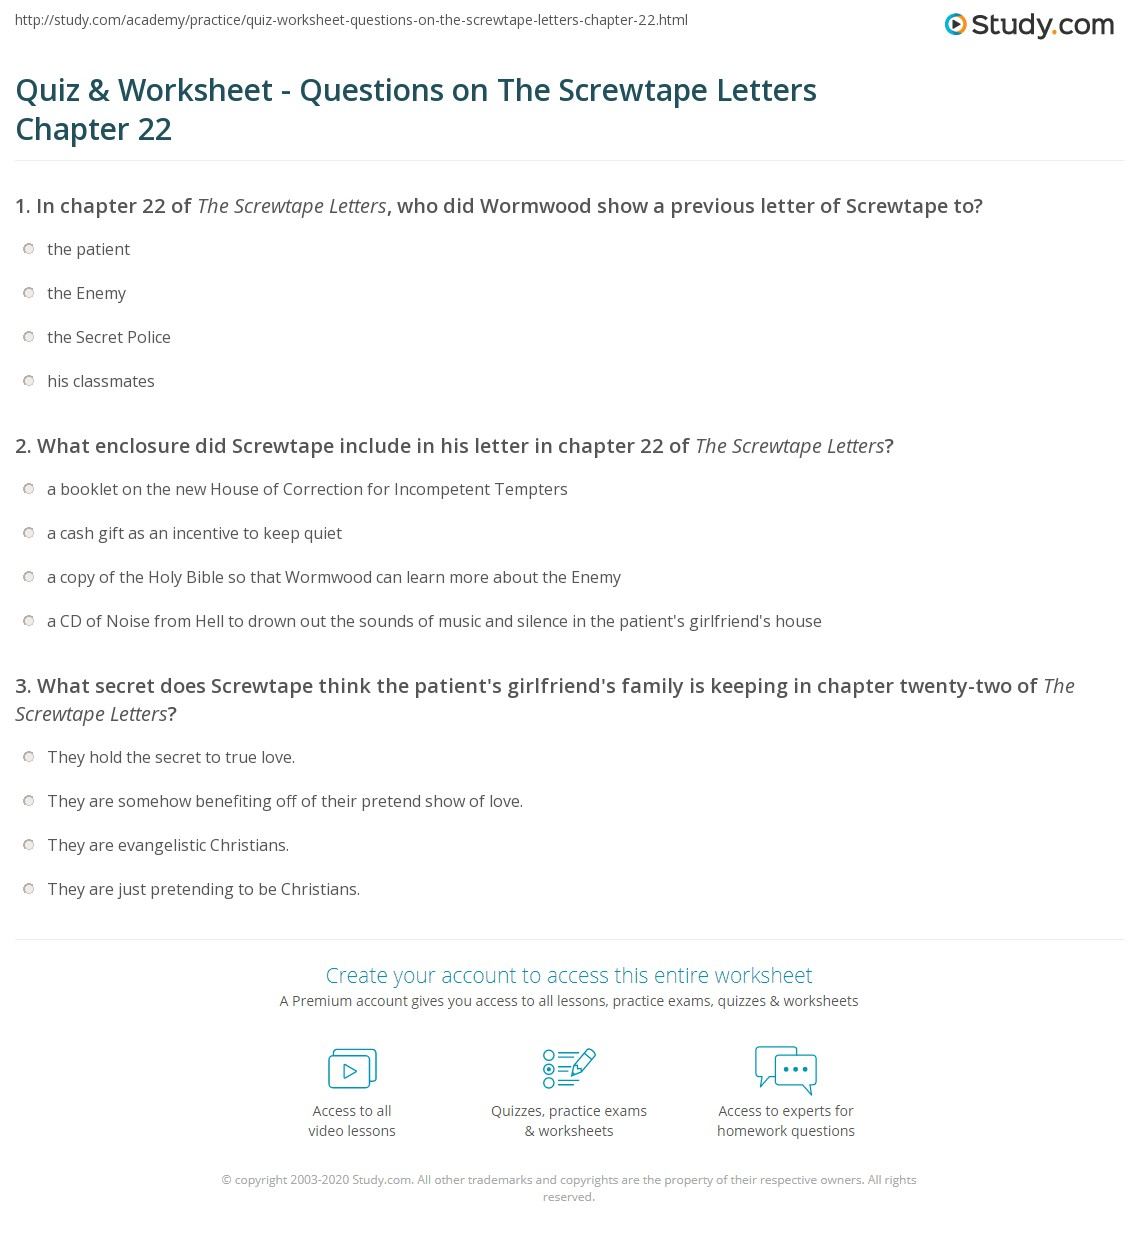 Quiz & Worksheet Questions on The Screwtape Letters Chapter 22